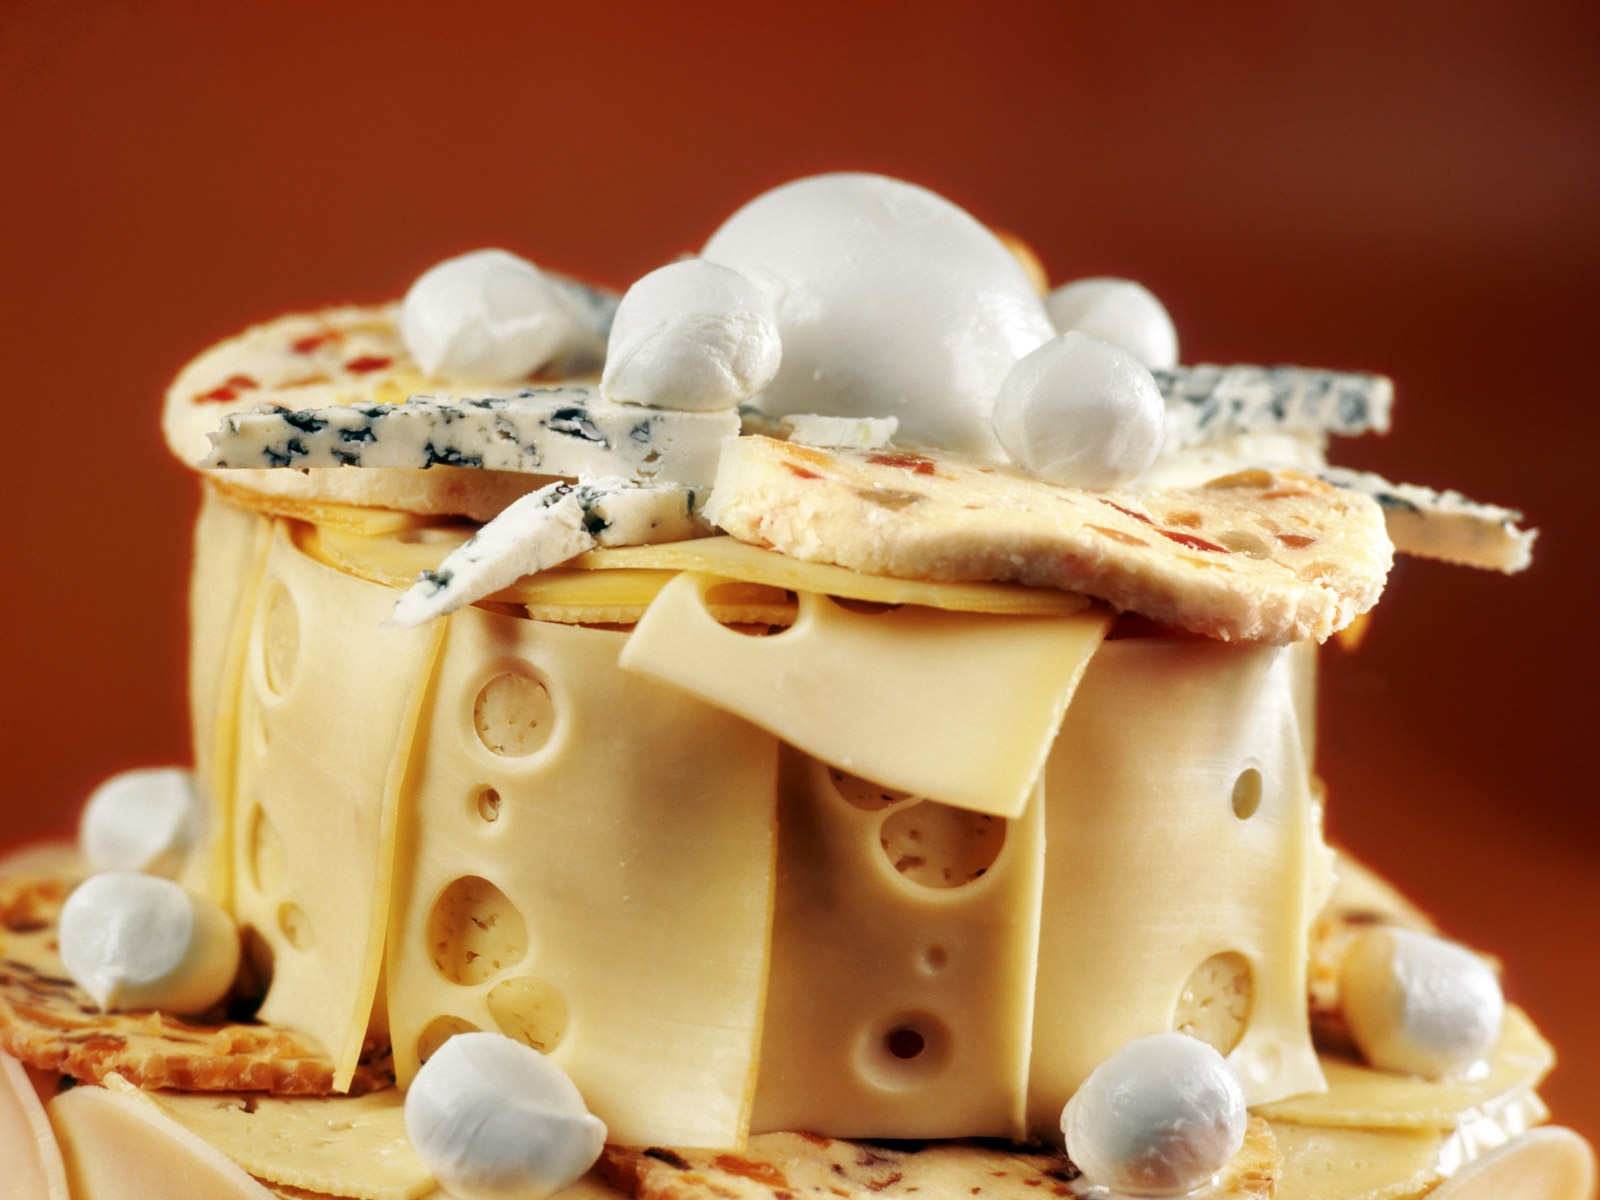 cheese_grade_shape_food_88460_1600x1200